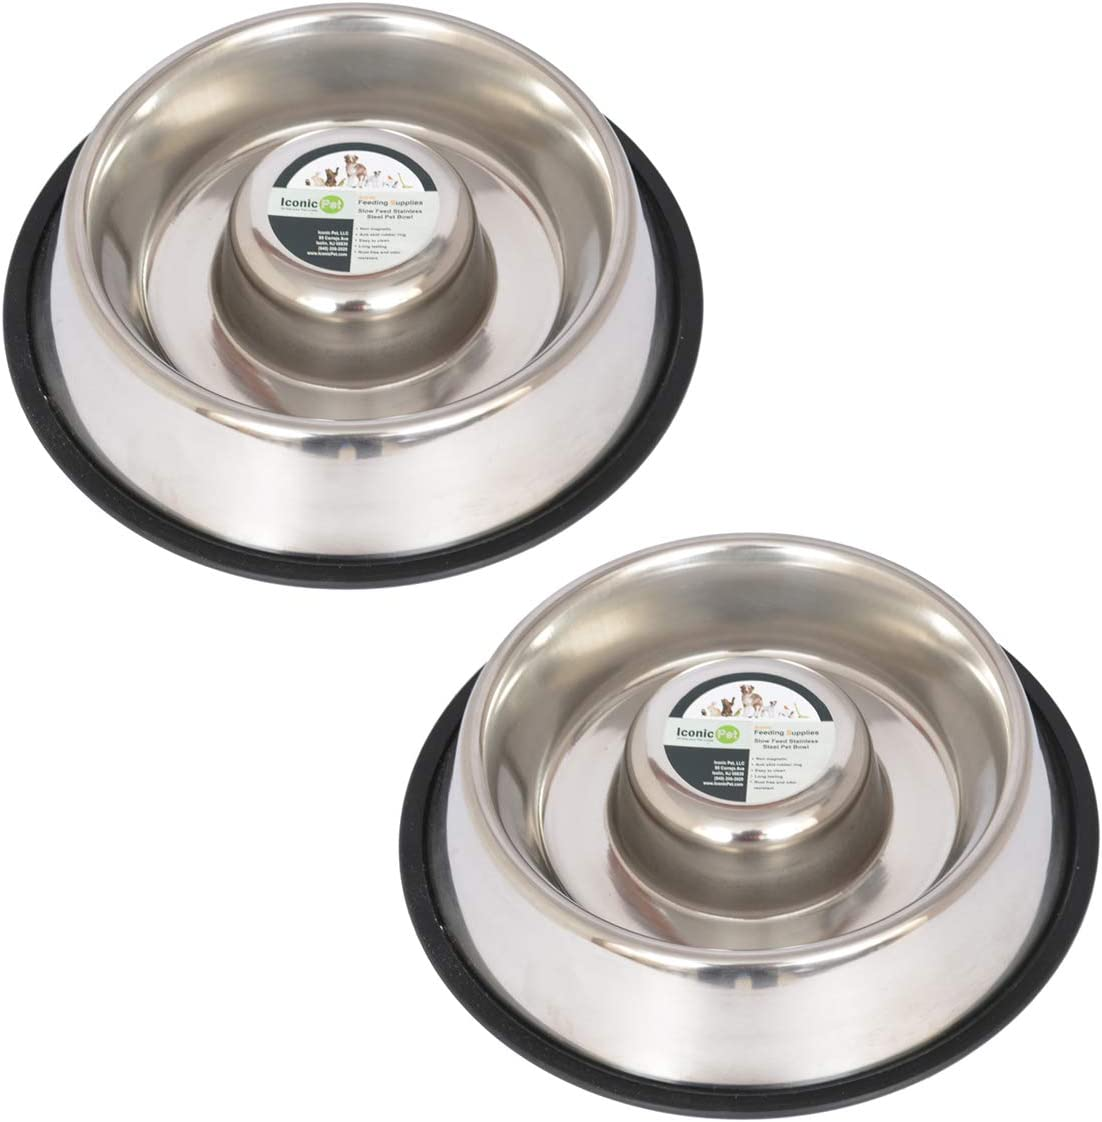 Iconic Pet Slow Feeding Stainless Steel Bowl with Anti-Skid Rubber Ring in Varying Sizes Noise Free Stable Pet Feeding Bowl for Dogs//Cats Reduces Chocking and Over Eating Habit for Better Digestion